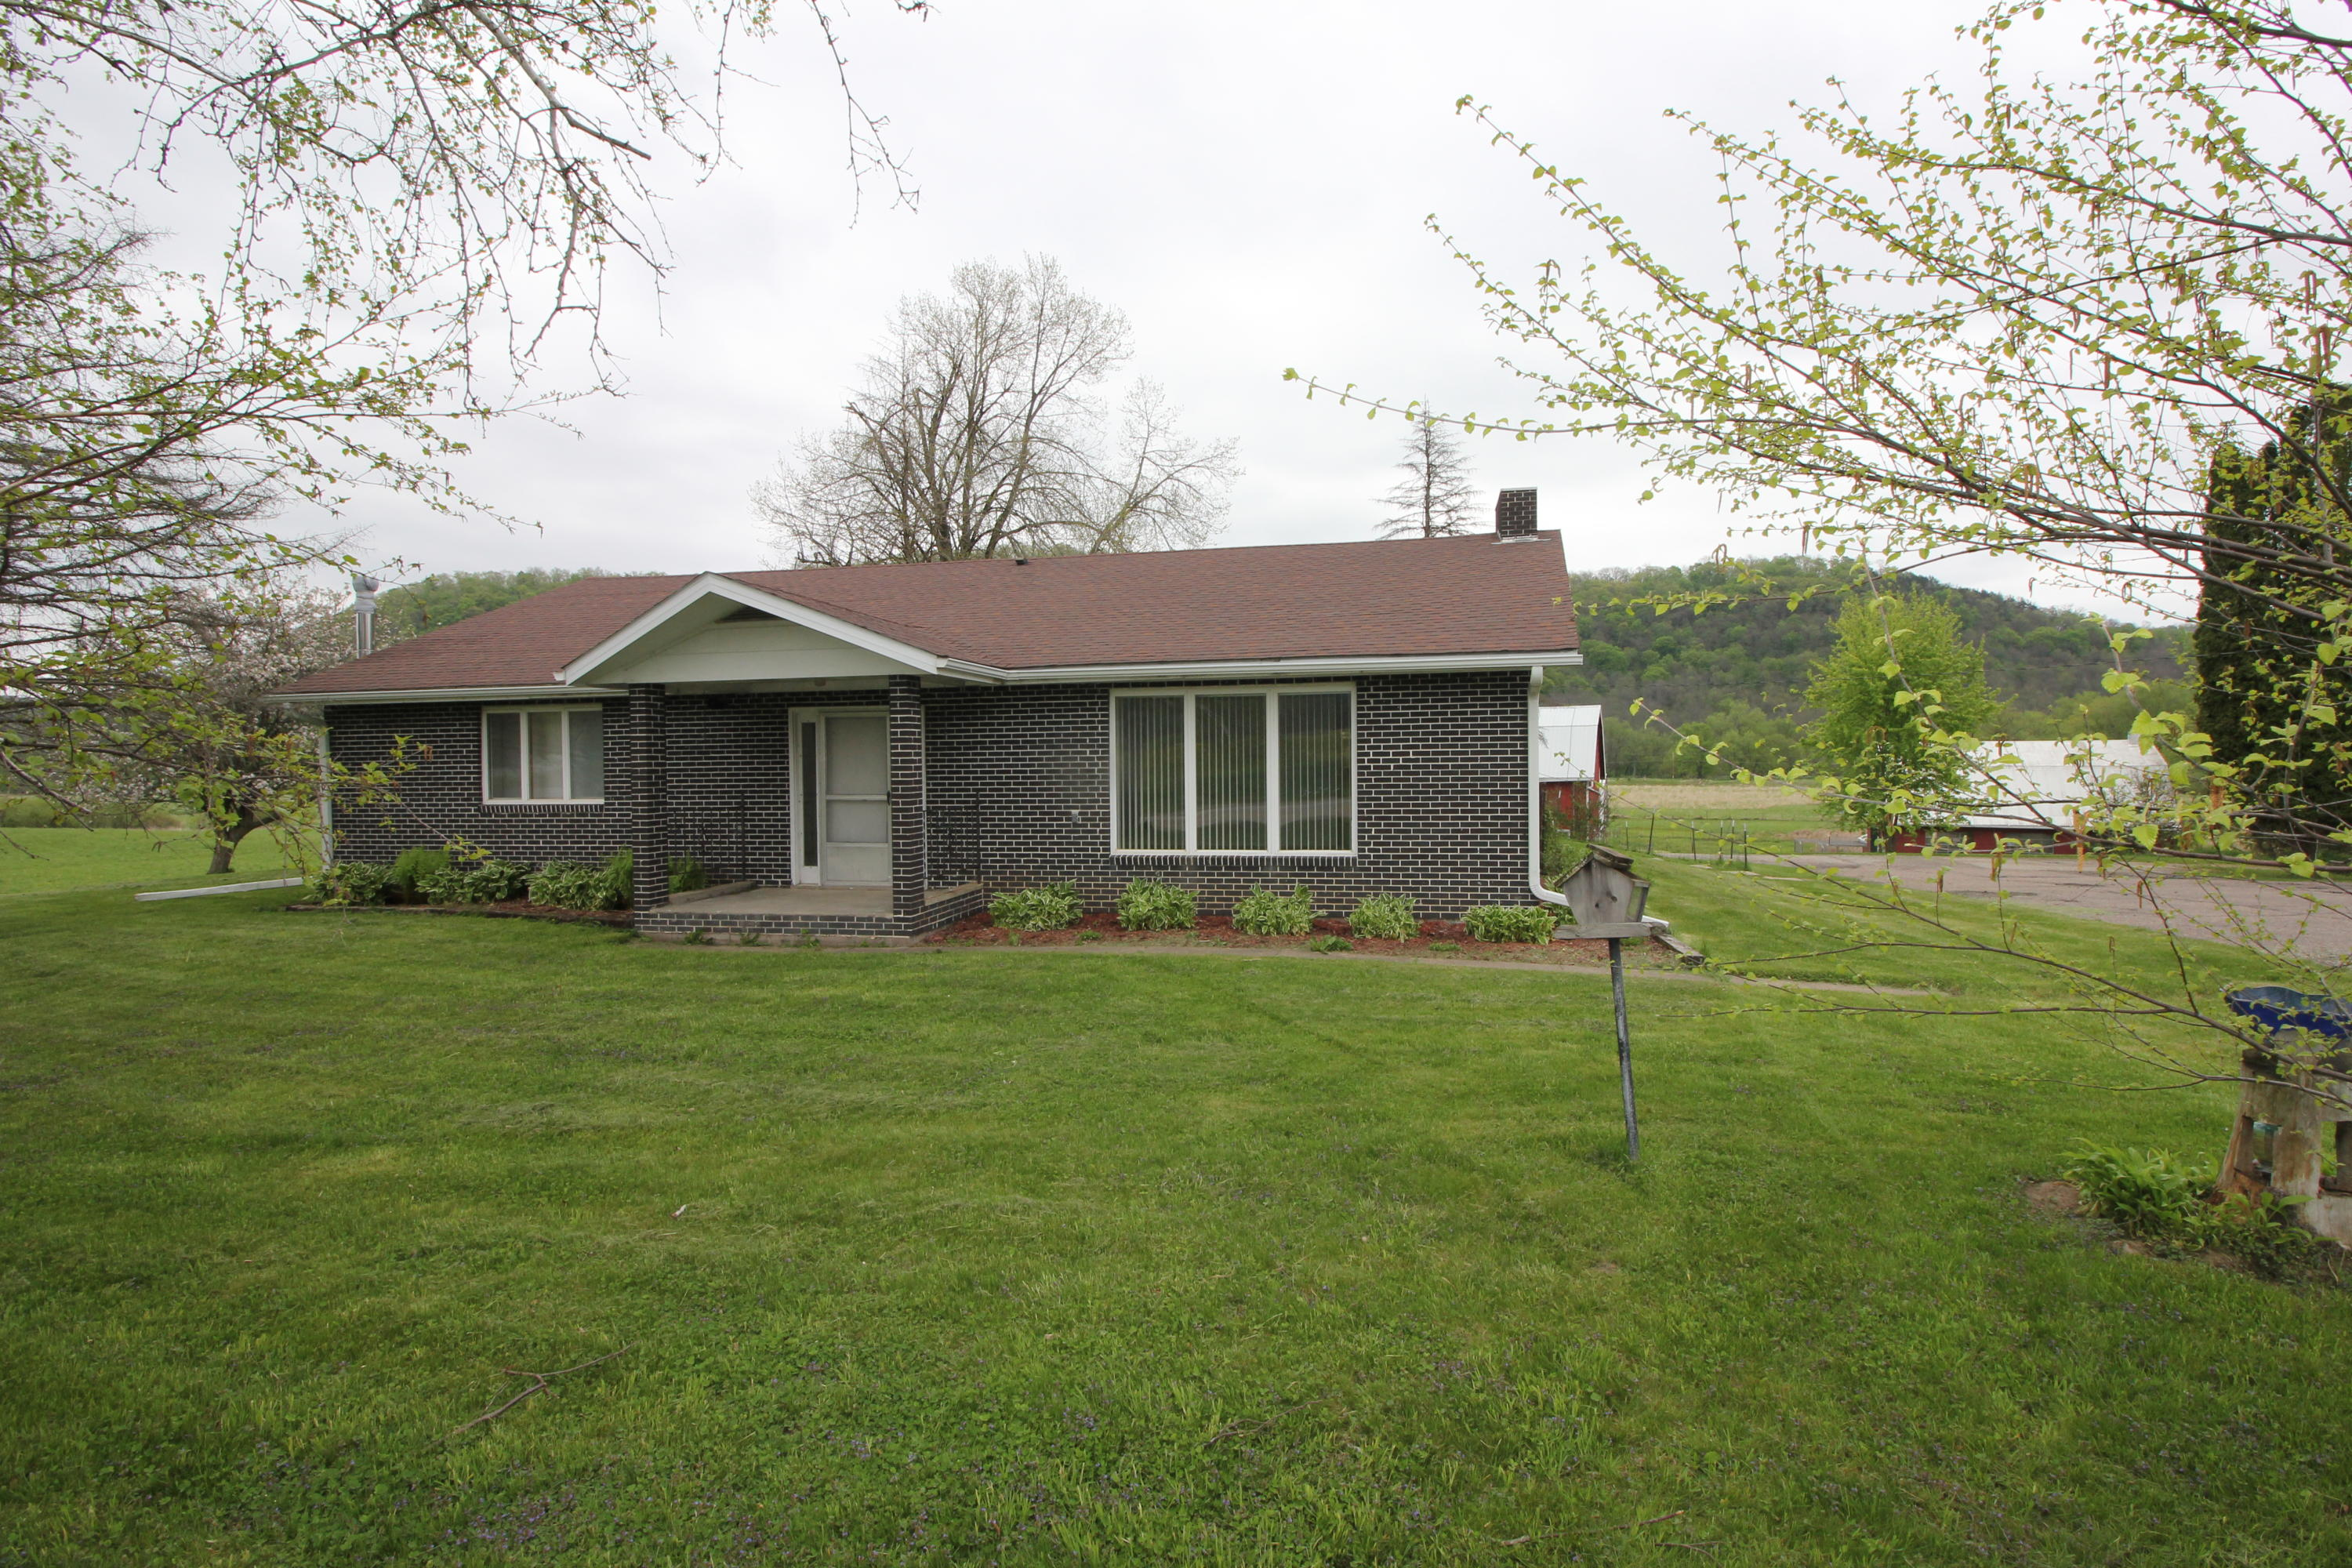 10643 State Highway 131, Forest, Wisconsin 54664, 4 Bedrooms Bedrooms, ,2 BathroomsBathrooms,Single-family,For Sale,State Highway 131,1677507